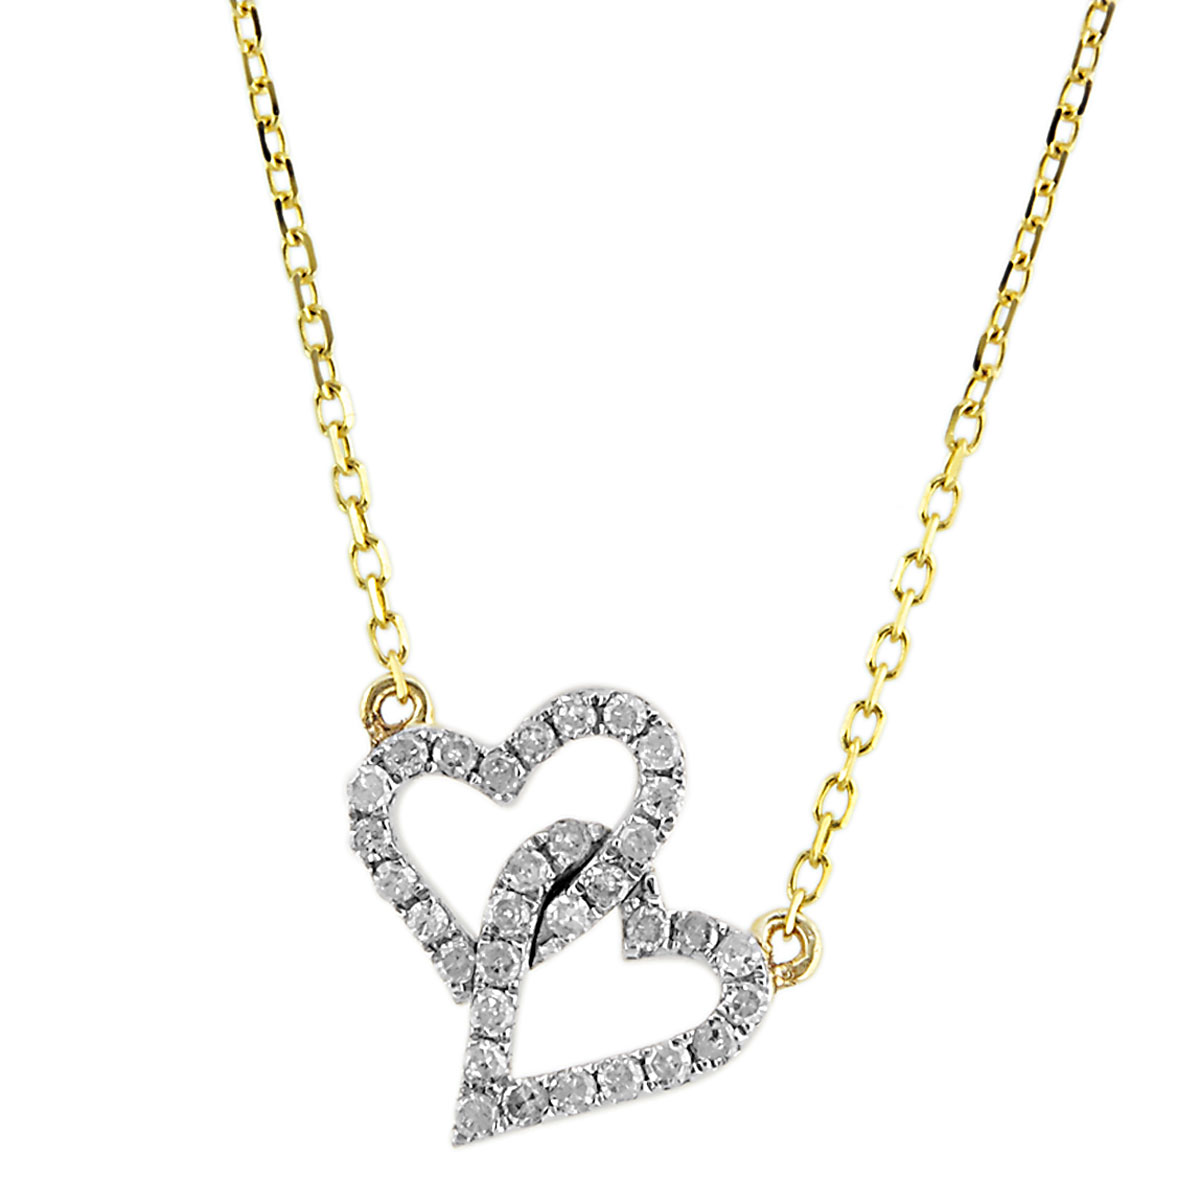 341572-Diamond Double Hearts Necklace